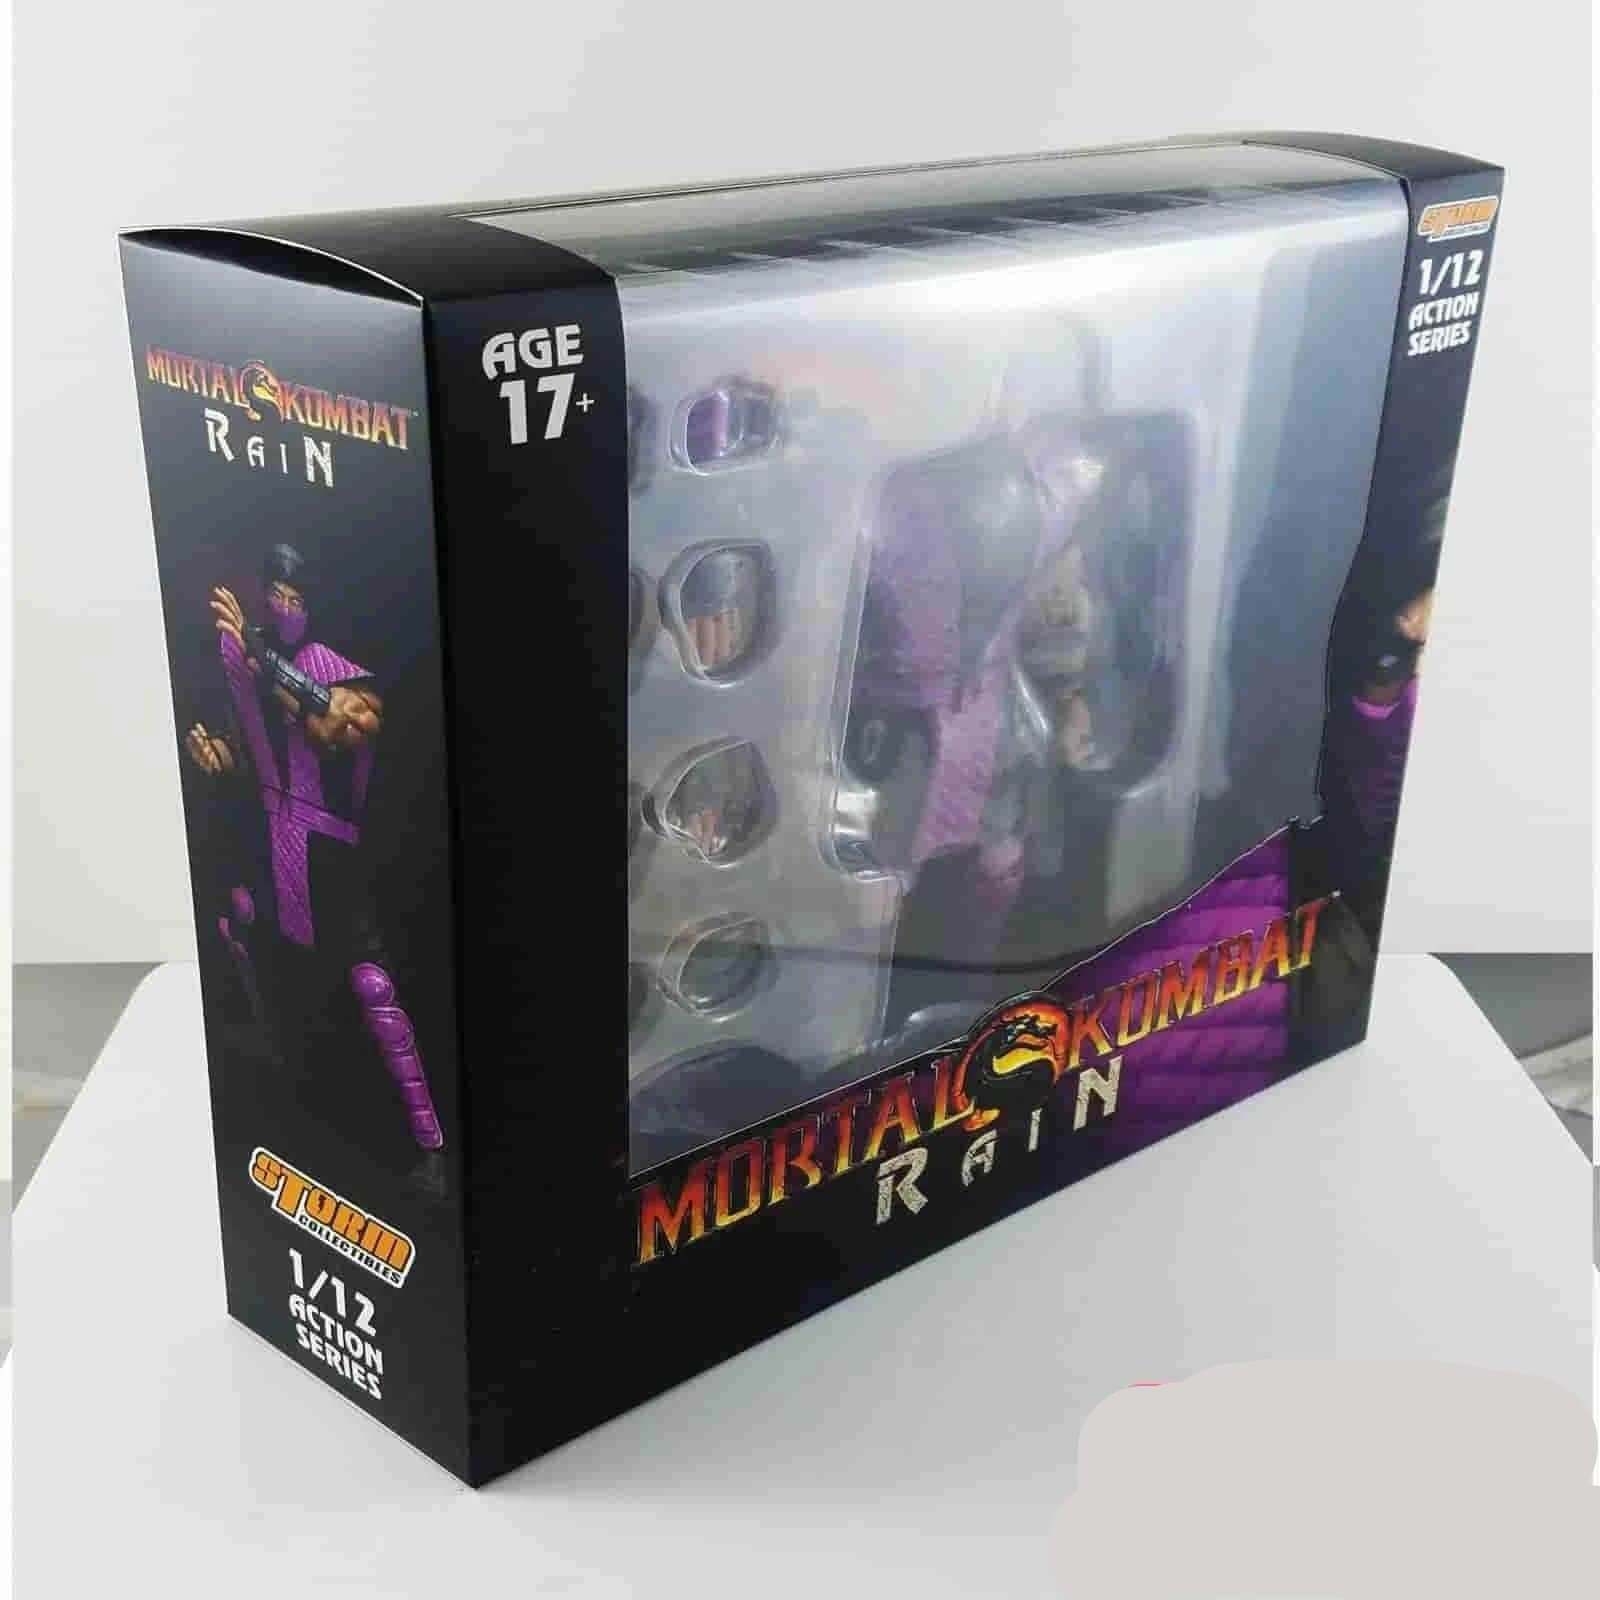 Rain - Mortal Kombat Ninja Action Figure NYCC Exclusive by Storm Collectibles